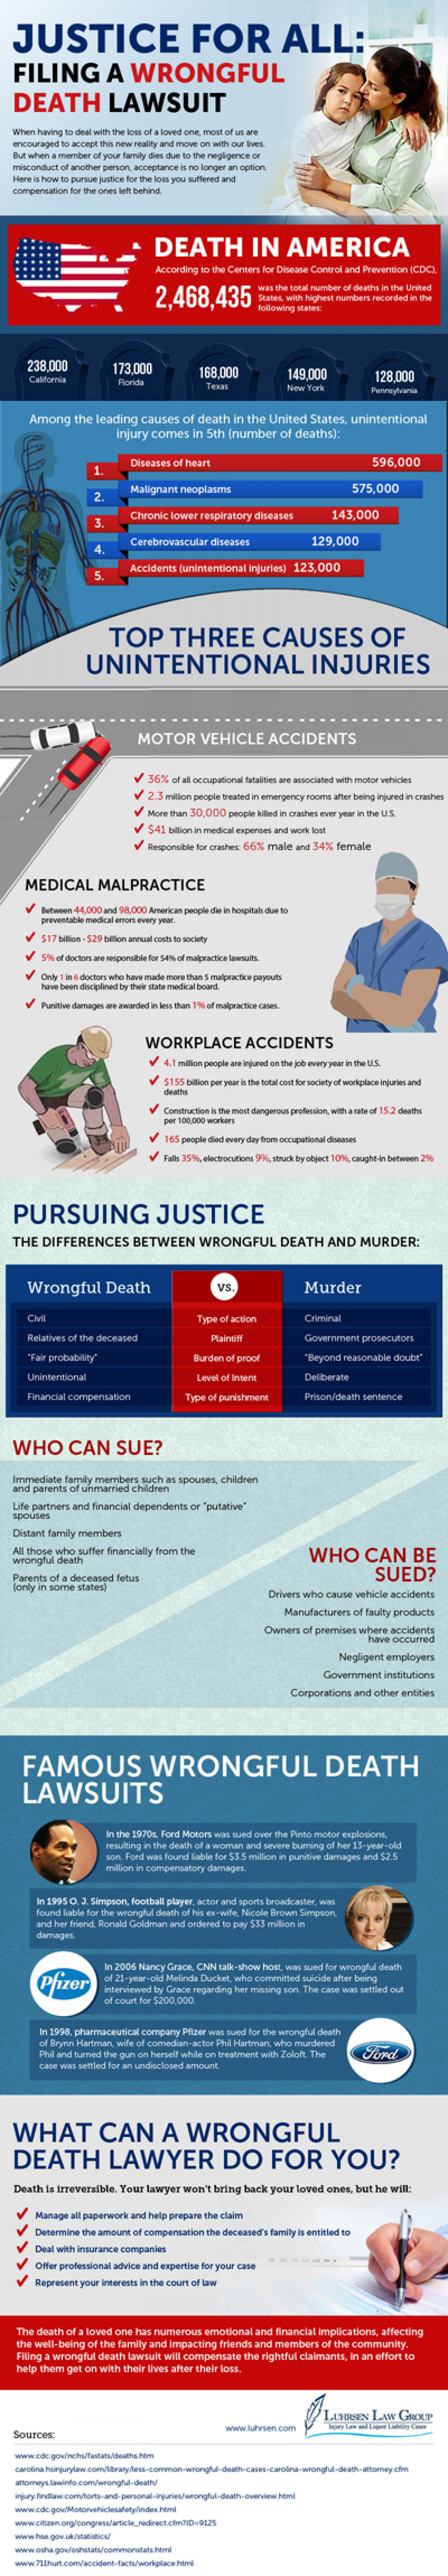 Justice for All: Filing a Wrongful Death Lawsuit  Infographic